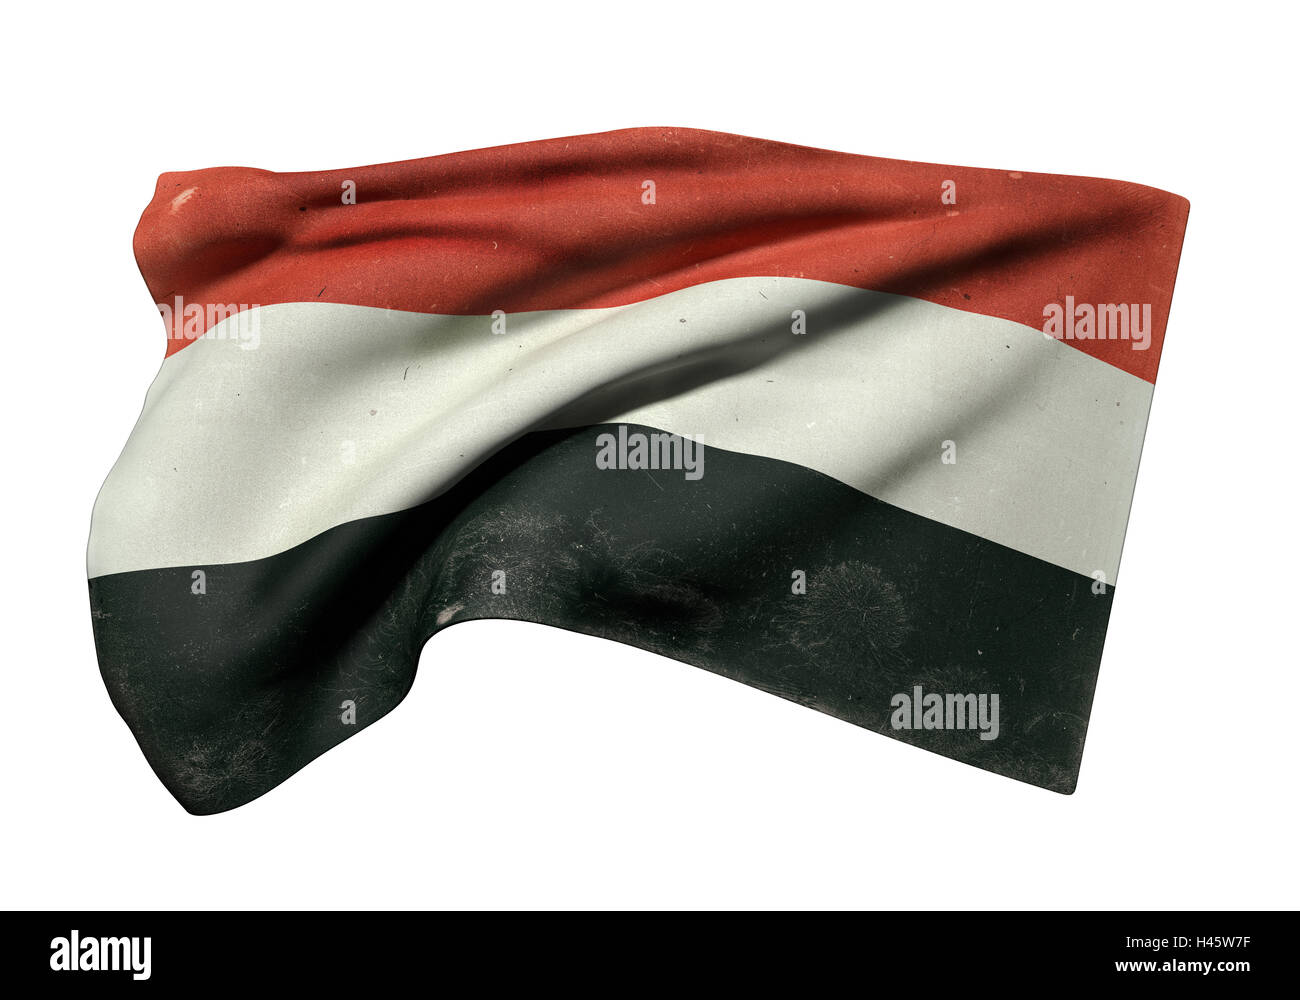 3d rendering of an old Republic of Yemen flag waving on white background - Stock Image